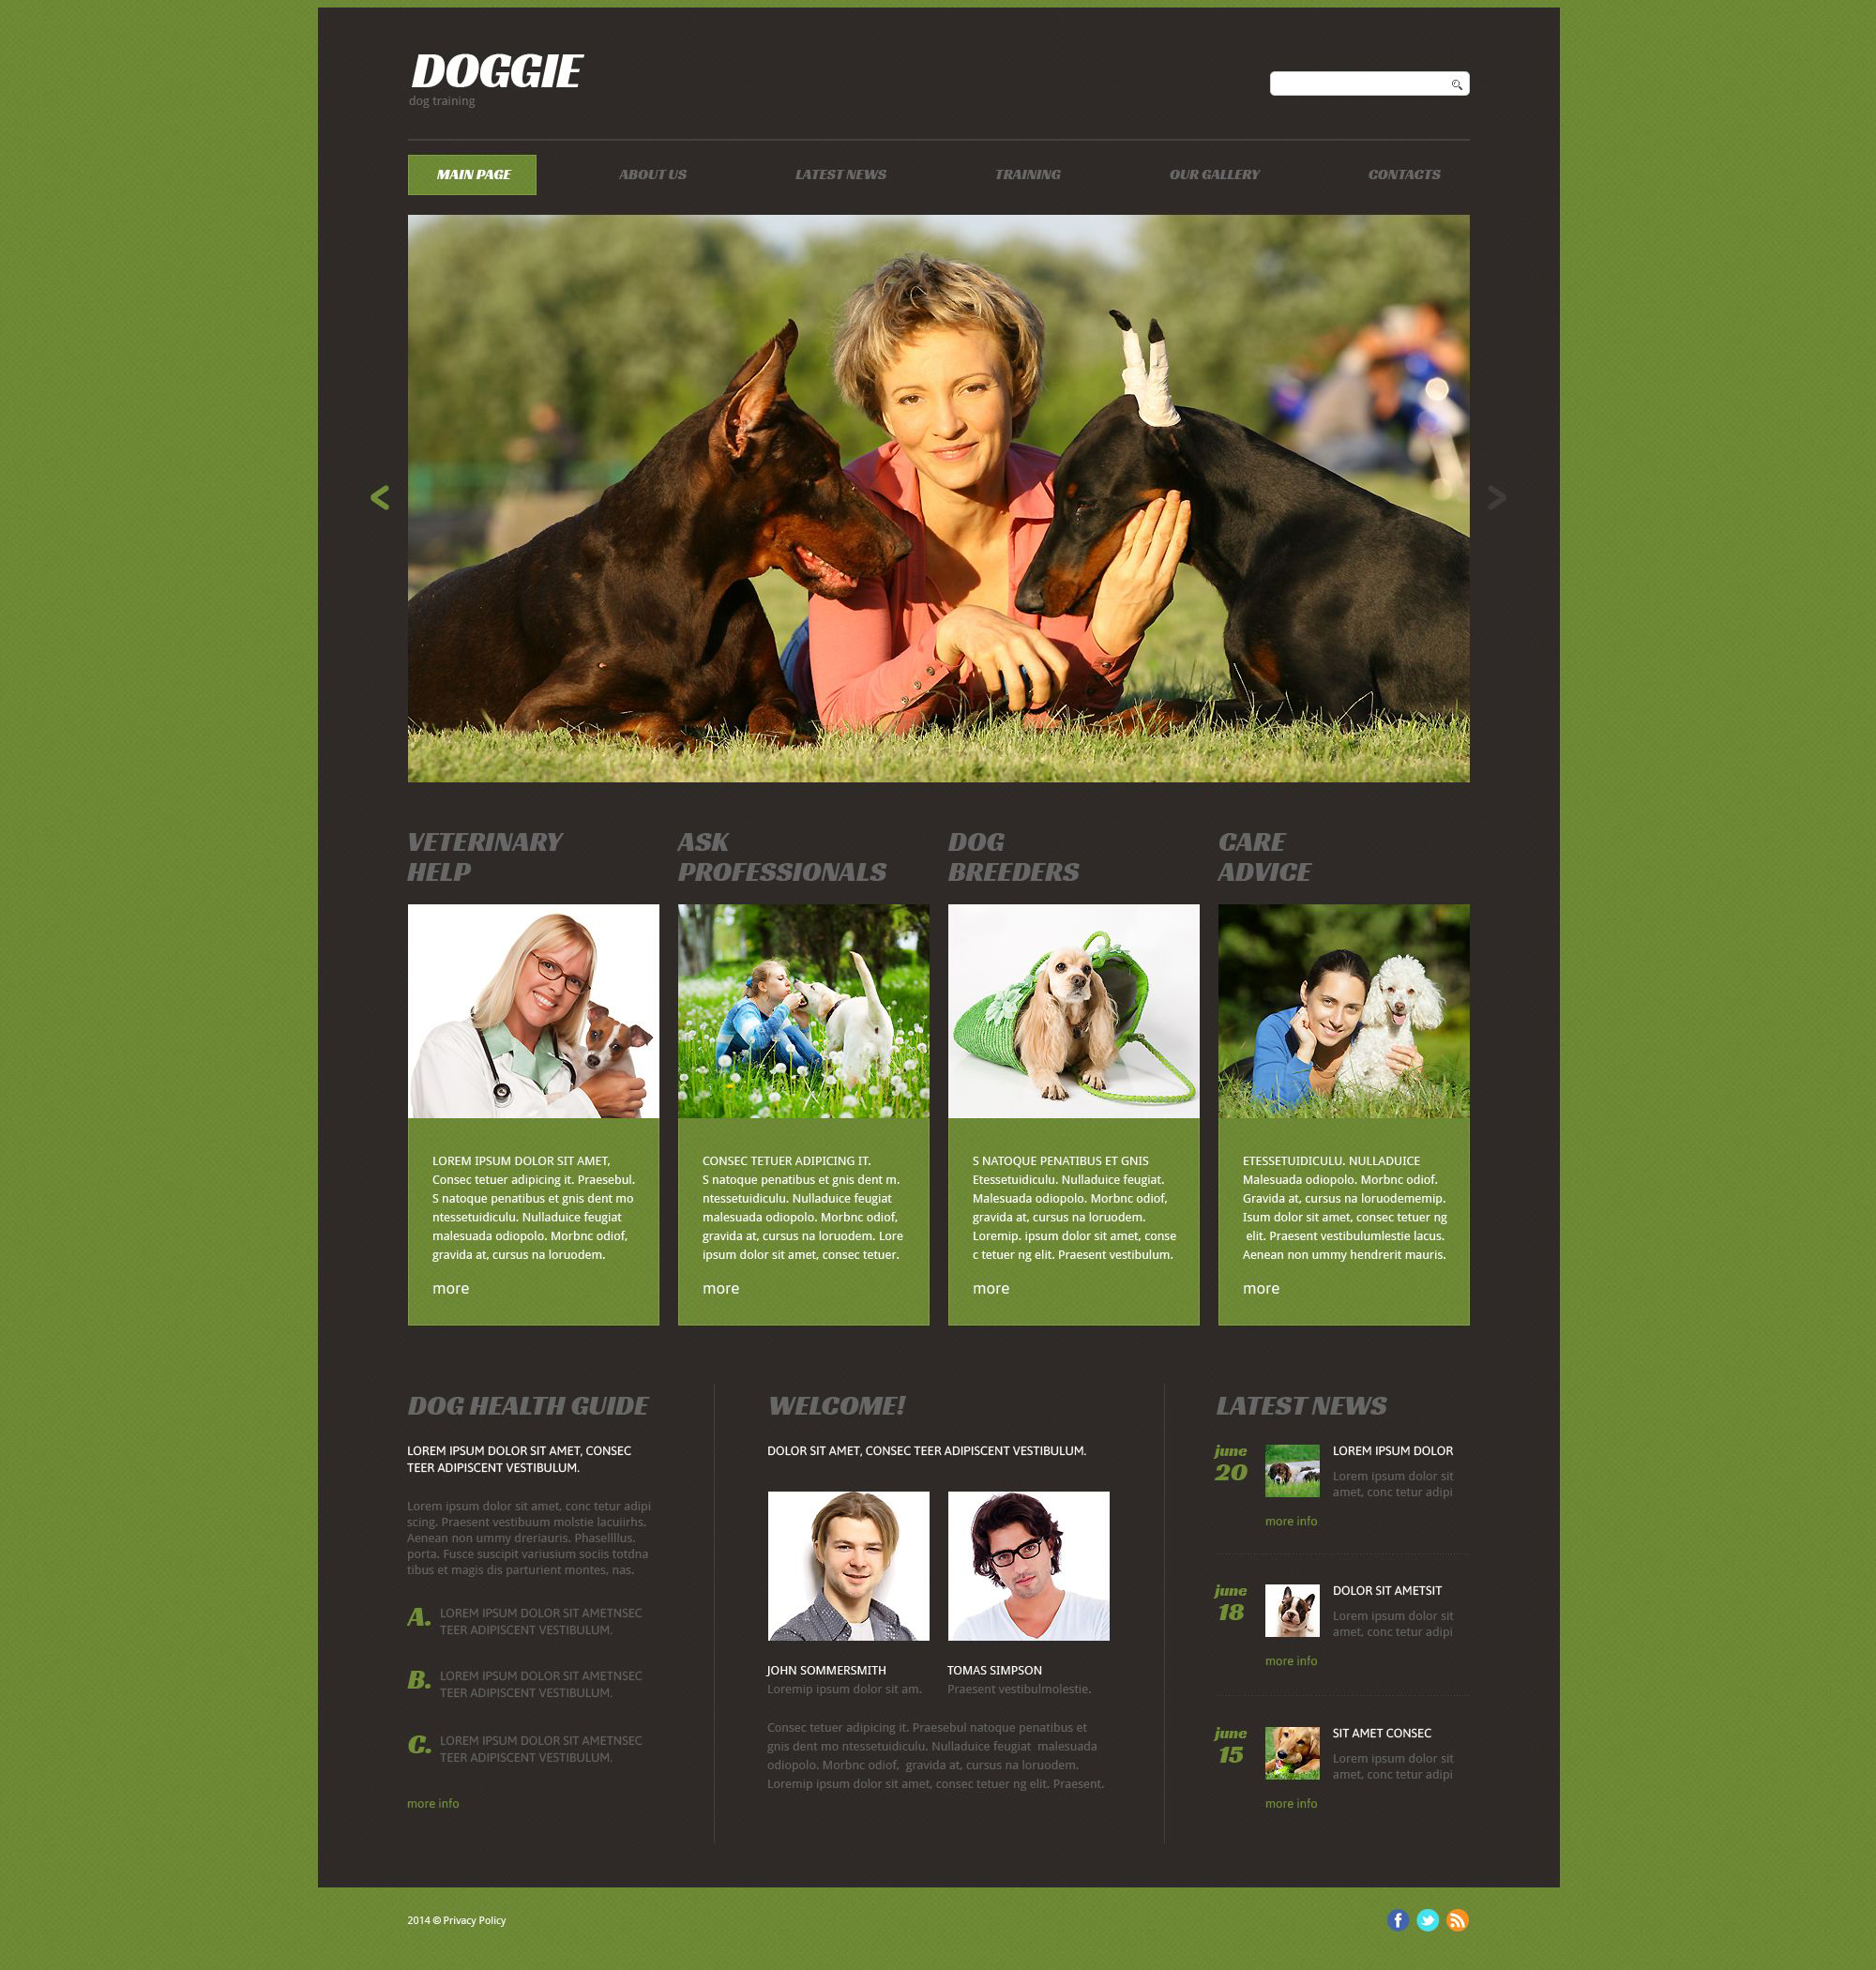 The Doggie Trainer Responsive Javascript Animated Design 53413, one of the best website templates of its kind (animals & pets, most popular), also known as doggie trainer website template, dog club website template, pet website template, animal website template, shows website template, certificates website template, animals website template, cat website template, puppy website template, training website template, pet website template, dogs website template, dog website template, breeder website template, pedigree website template, forage website template, feed and related with doggie trainer, dog club, pet, animal, shows, certificates, animals, cat, puppy, training, pet, dogs, dog, breeder, pedigree, forage, feed, etc.